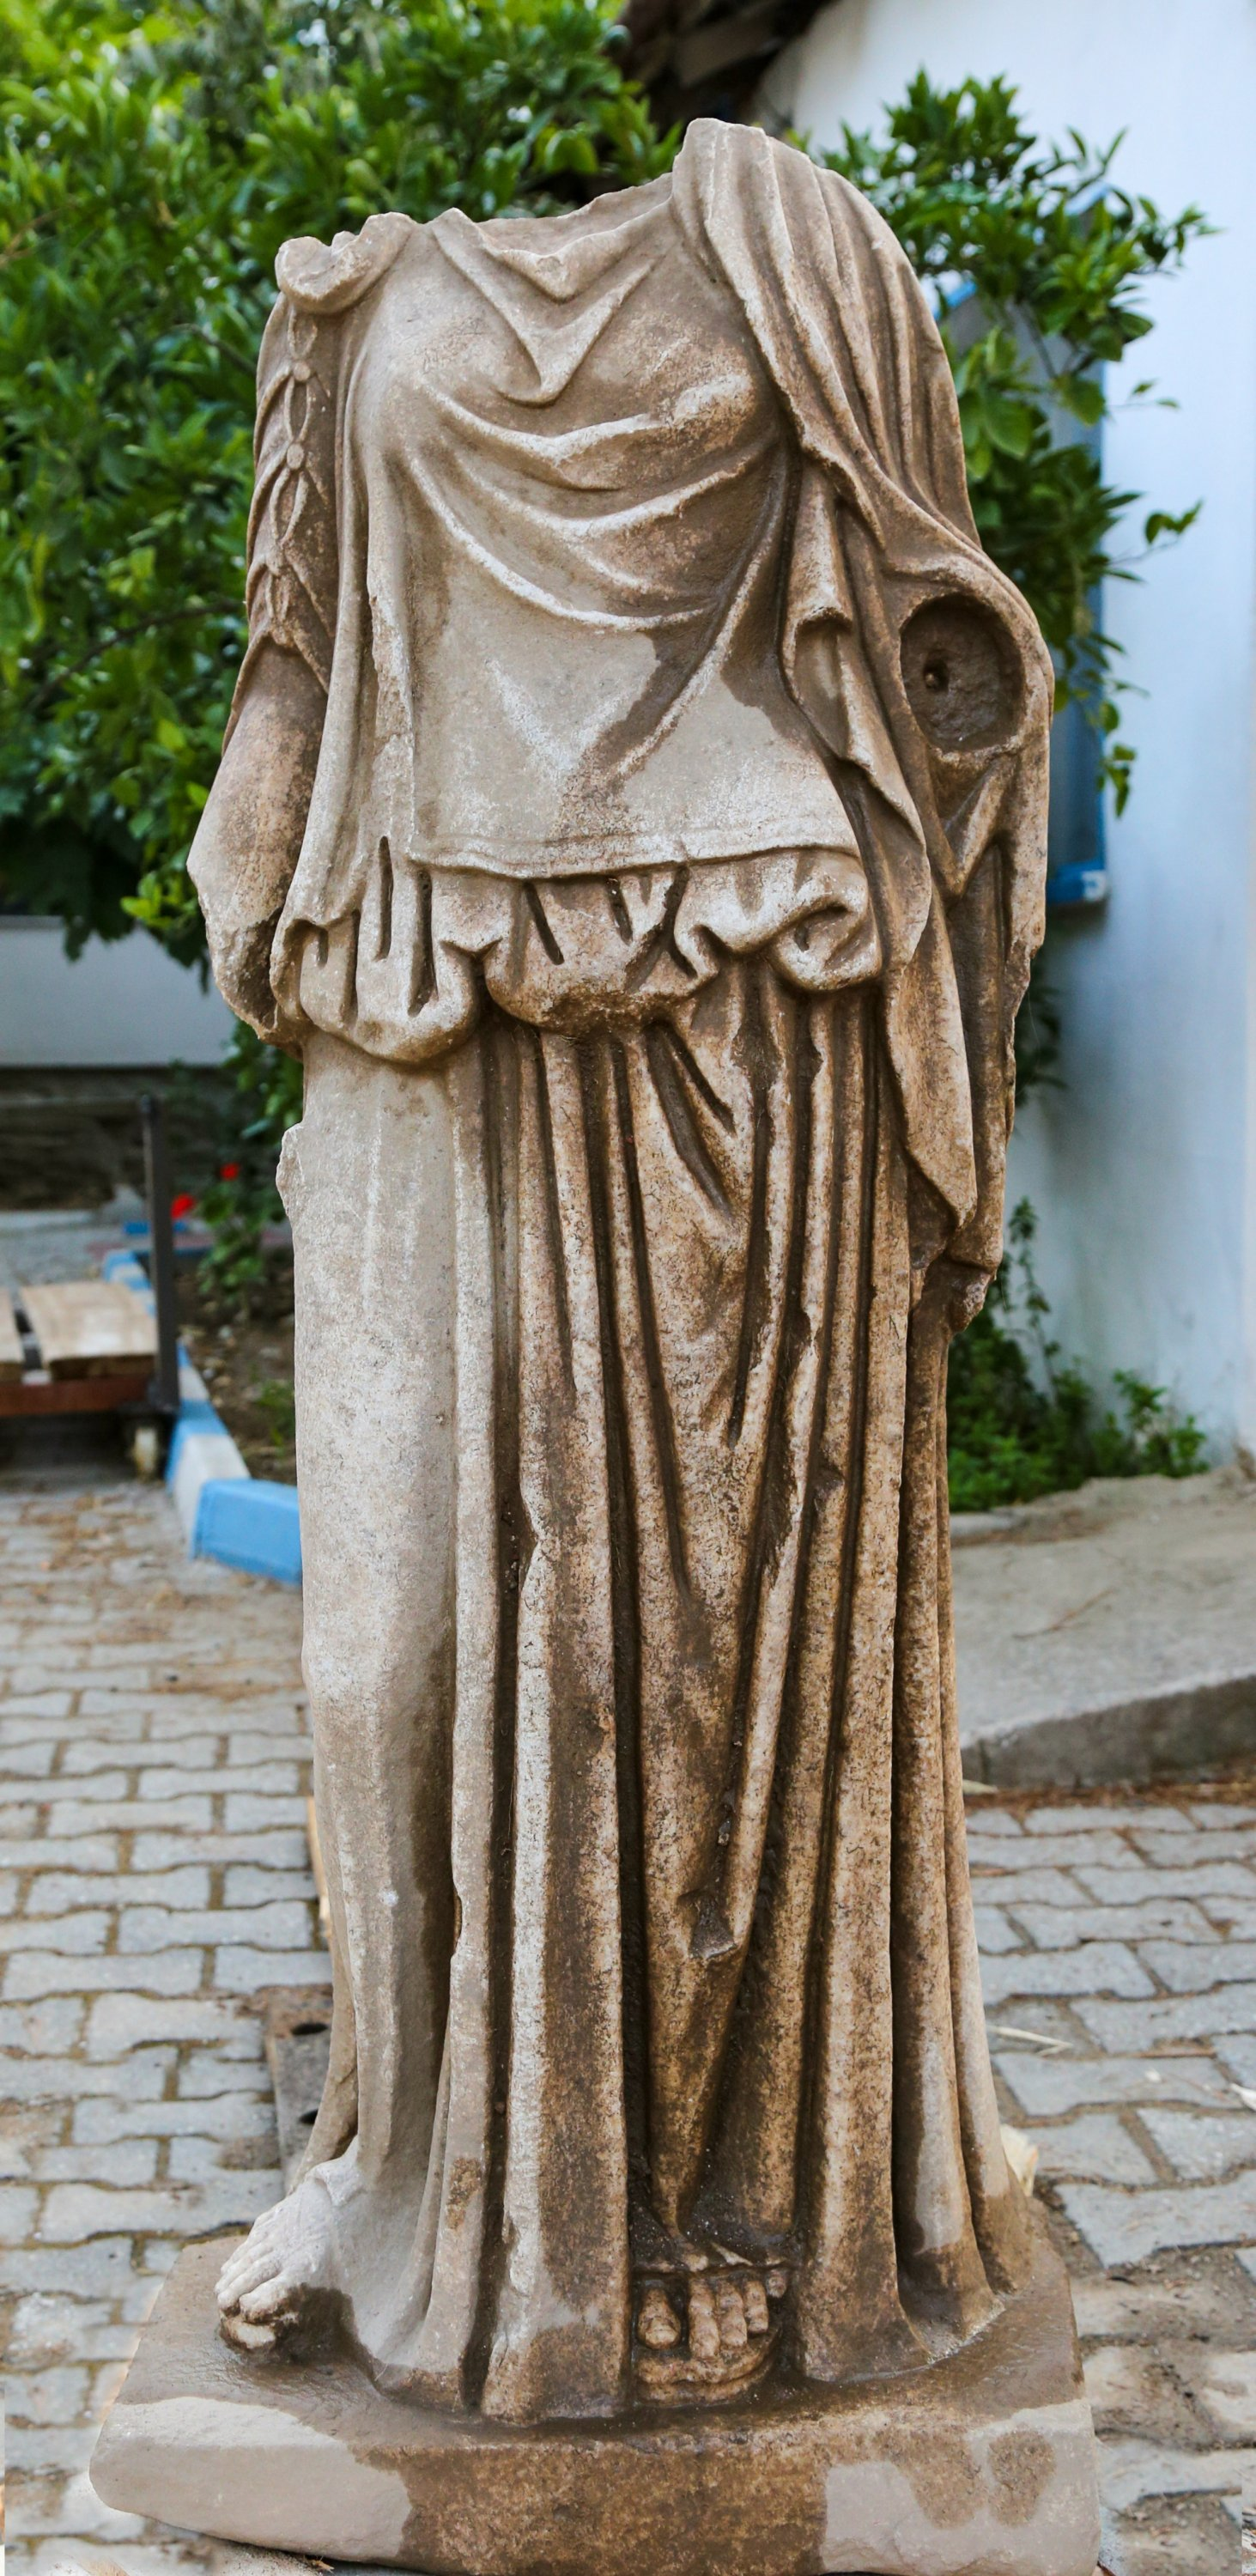 The statue of a woman found in the ancient city of Metropolis, Izmir, western Turkey, June 28, 2021. (AA Photo)